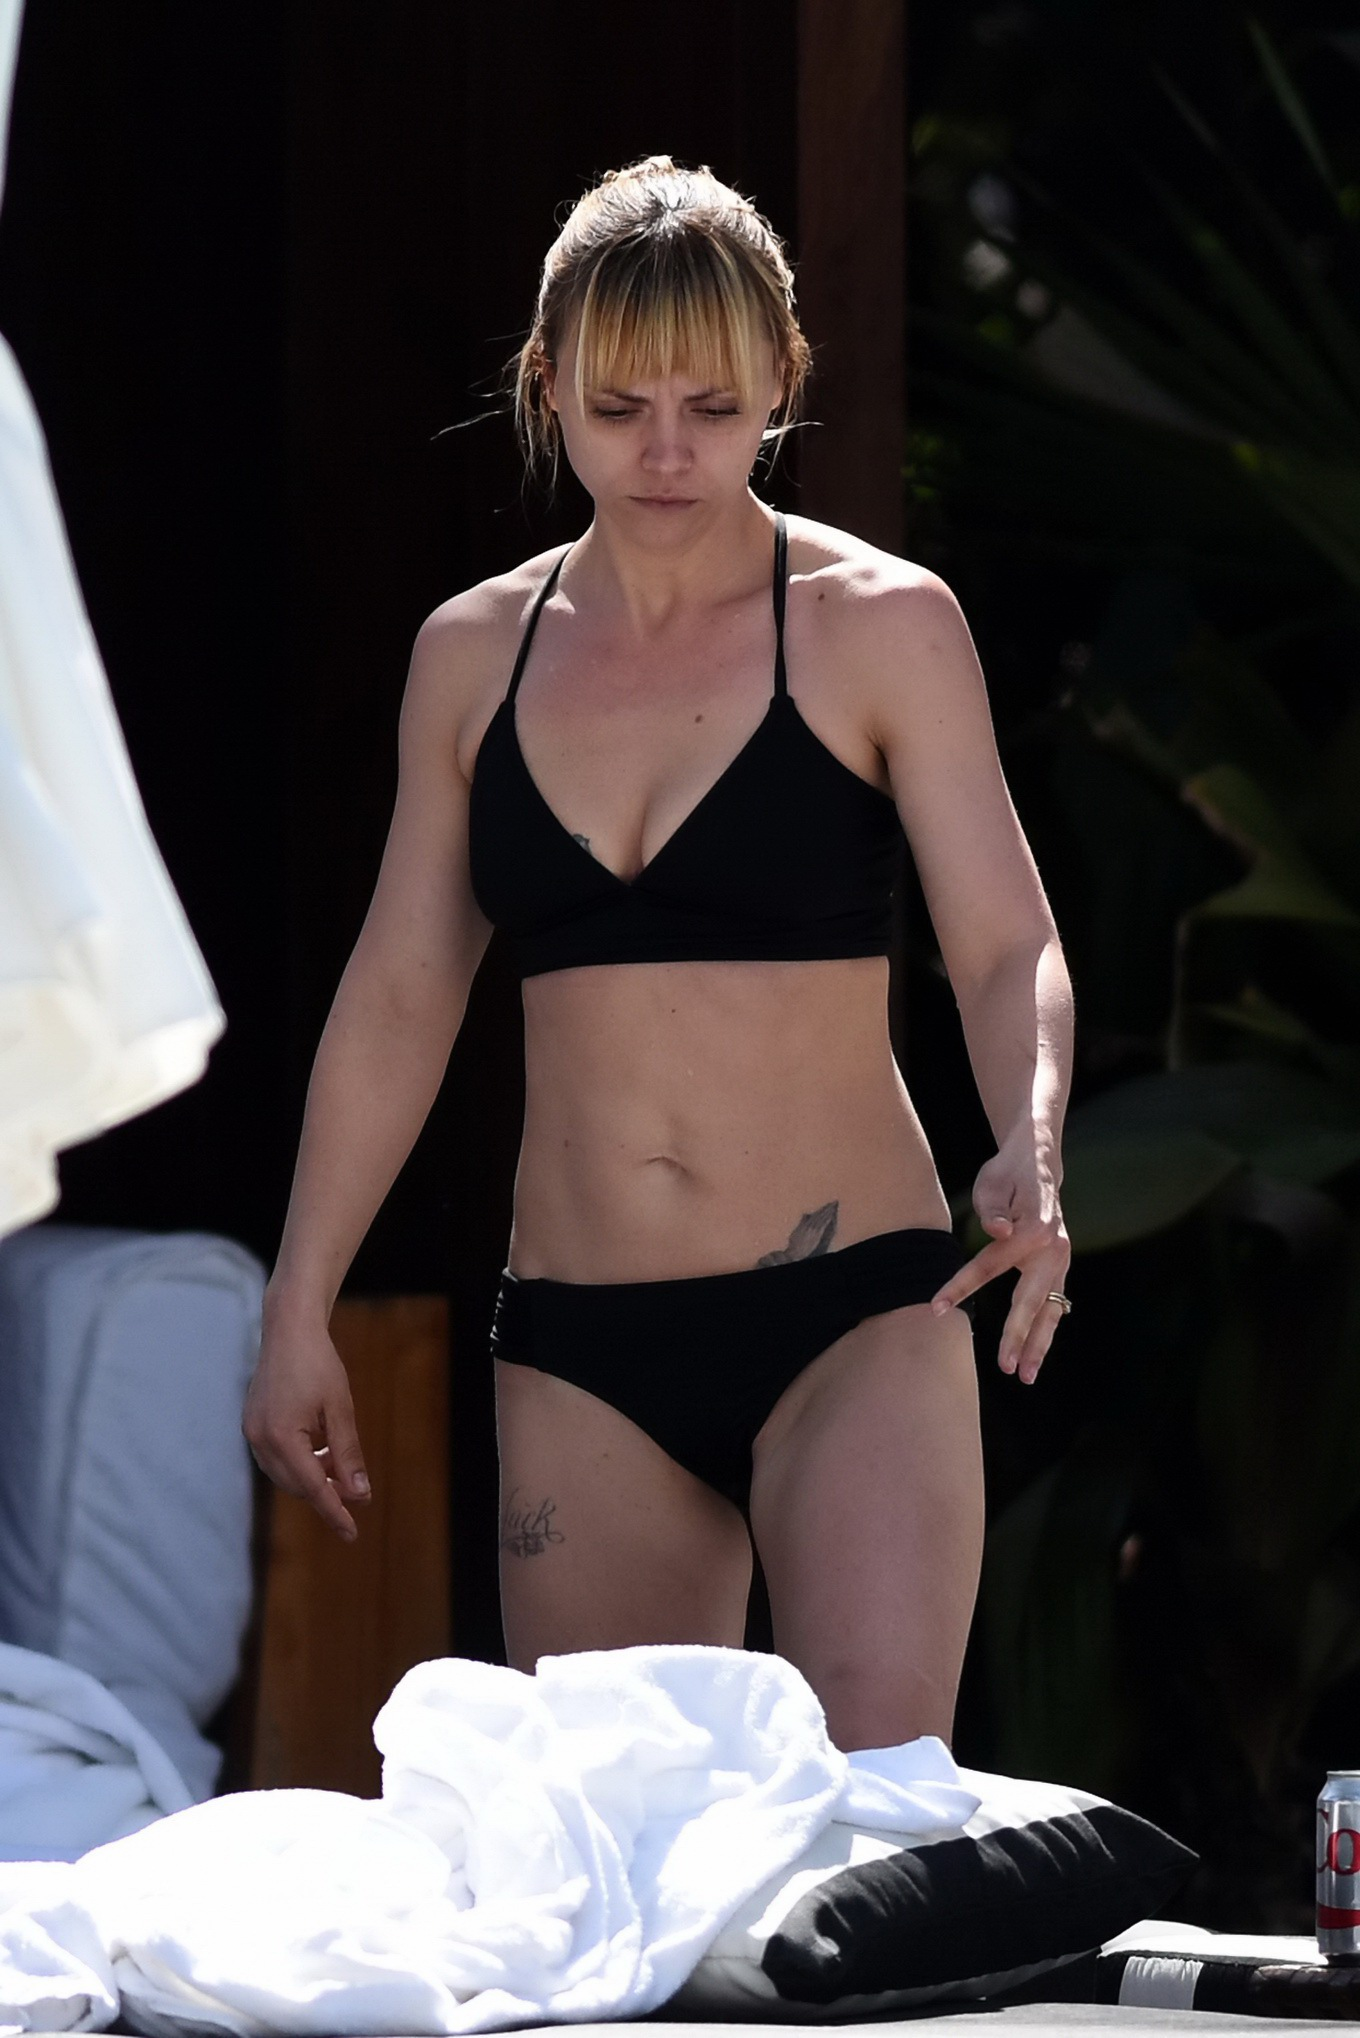 ricci showing her hot body in black bikini at the pool in miami